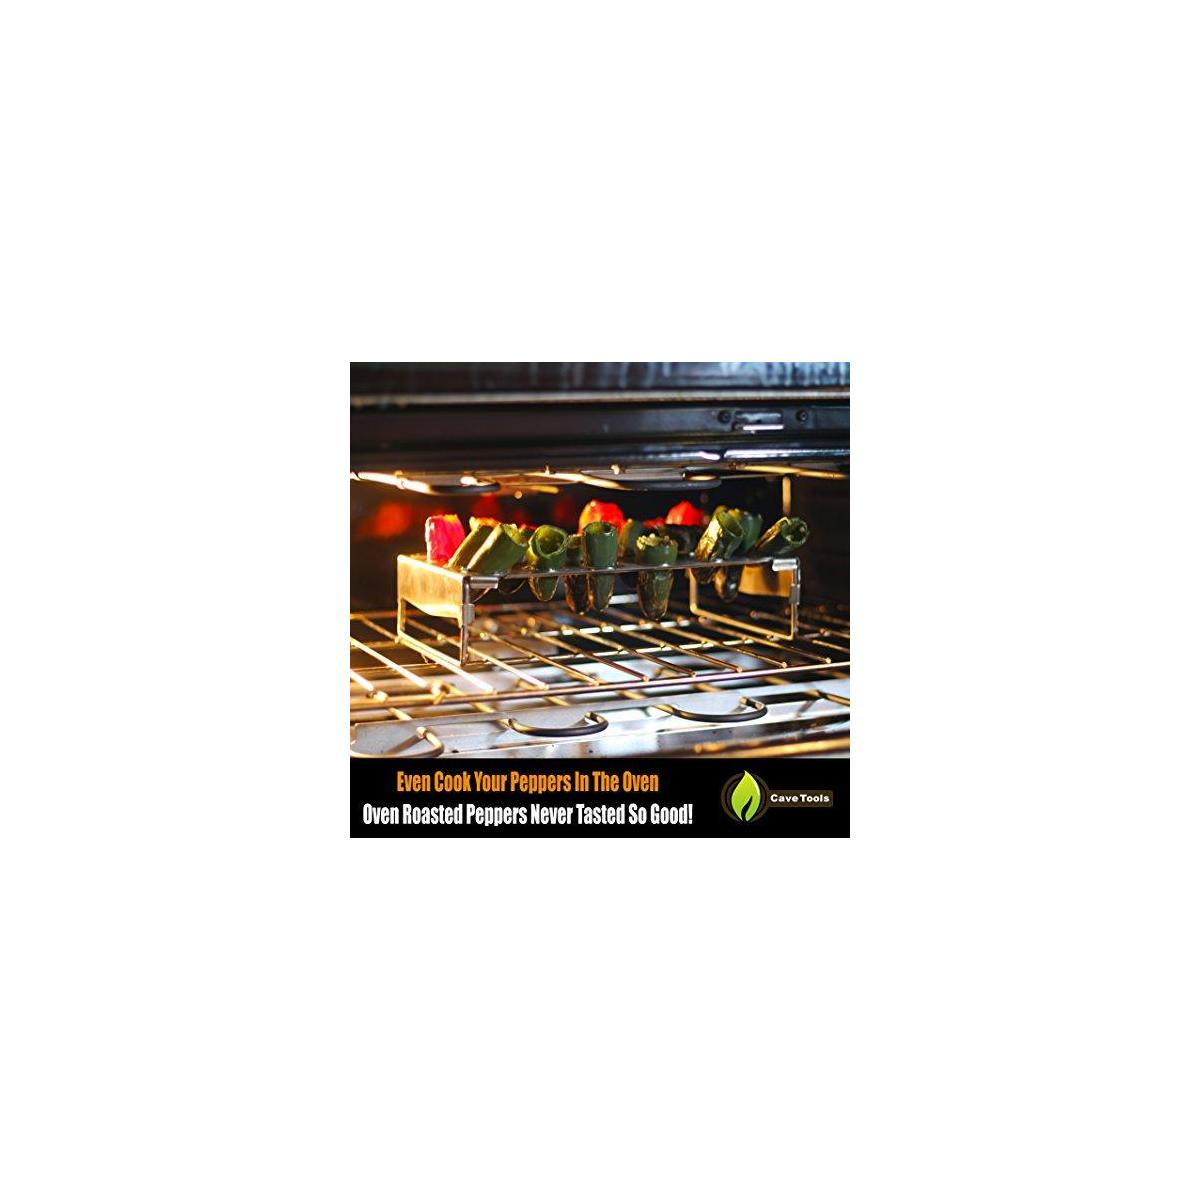 Chicken Wing Rack + Jalapeno Grill Roaster & Pepper Corer Tool - Large 24 Capacity Holder - Also for Cooking Chili on BBQ Smoker or Oven - Dishwasher Safe Stainless Steel Accessories